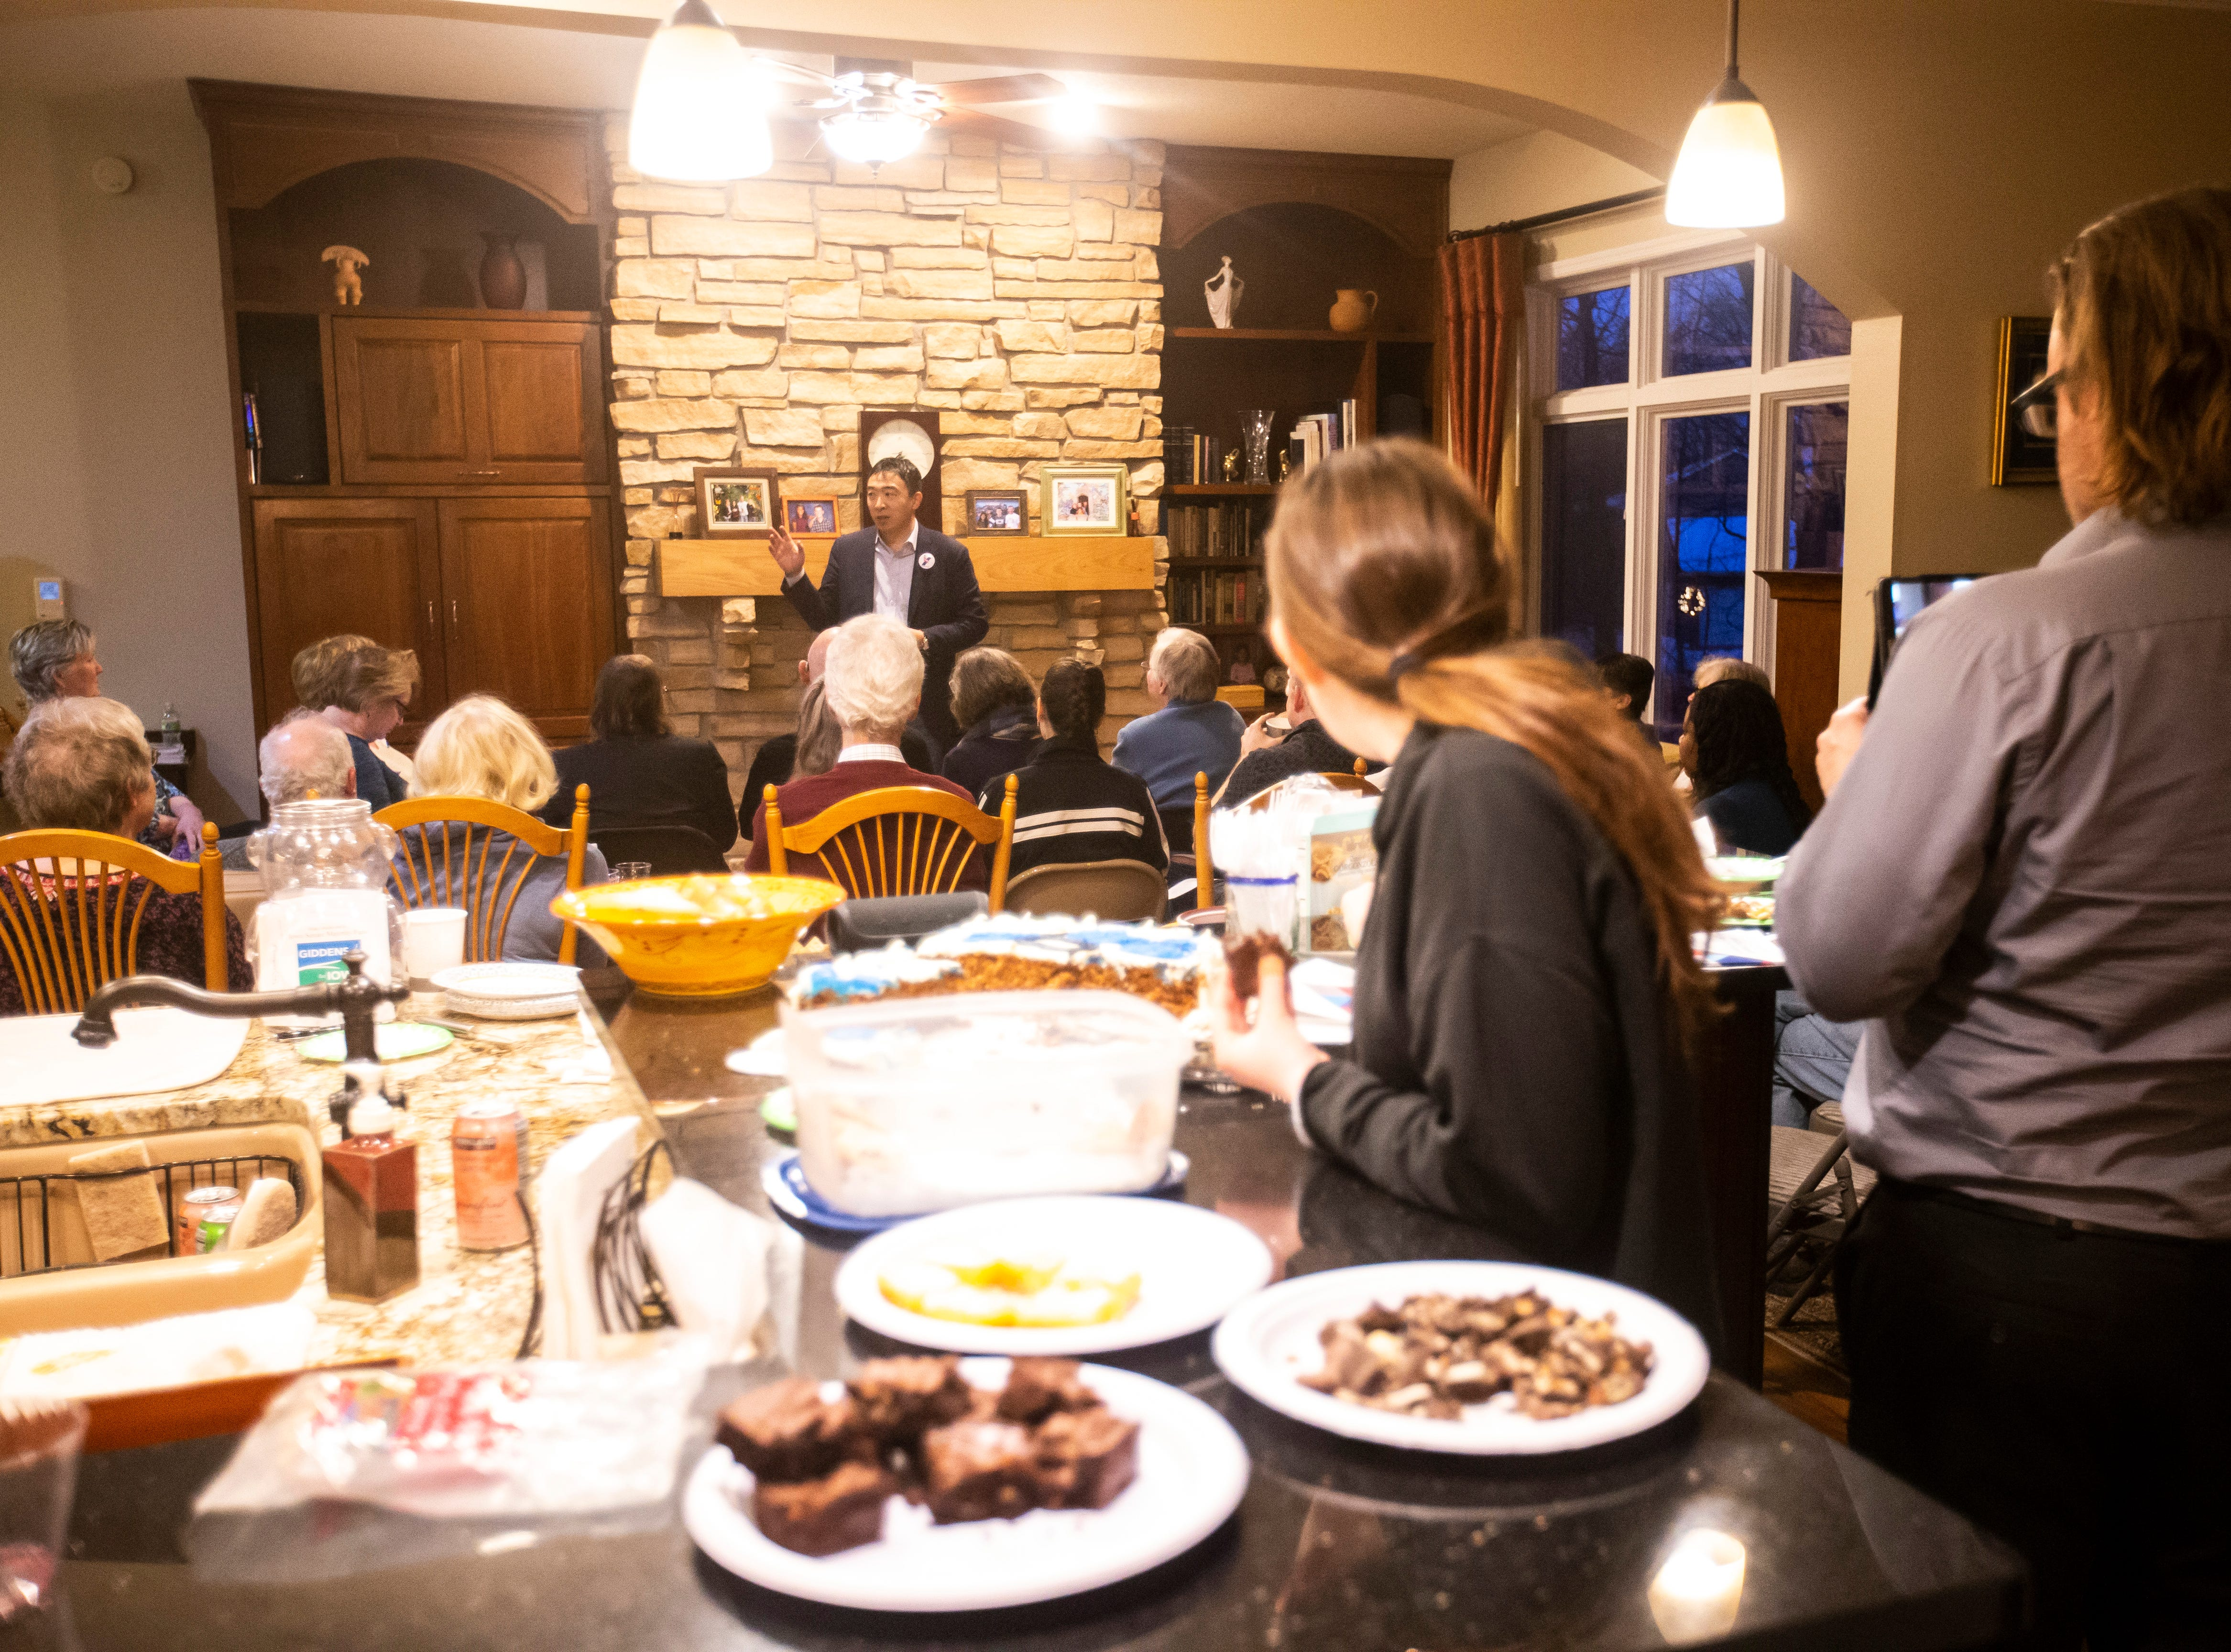 """Andrew Yang, a 2020 Democratic presidential candidate, speaks at the """"Potluck Insurgency,"""" a dinner party organized by local activists, on Sunday, March 10, 2019, at a home in Iowa City, Iowa."""